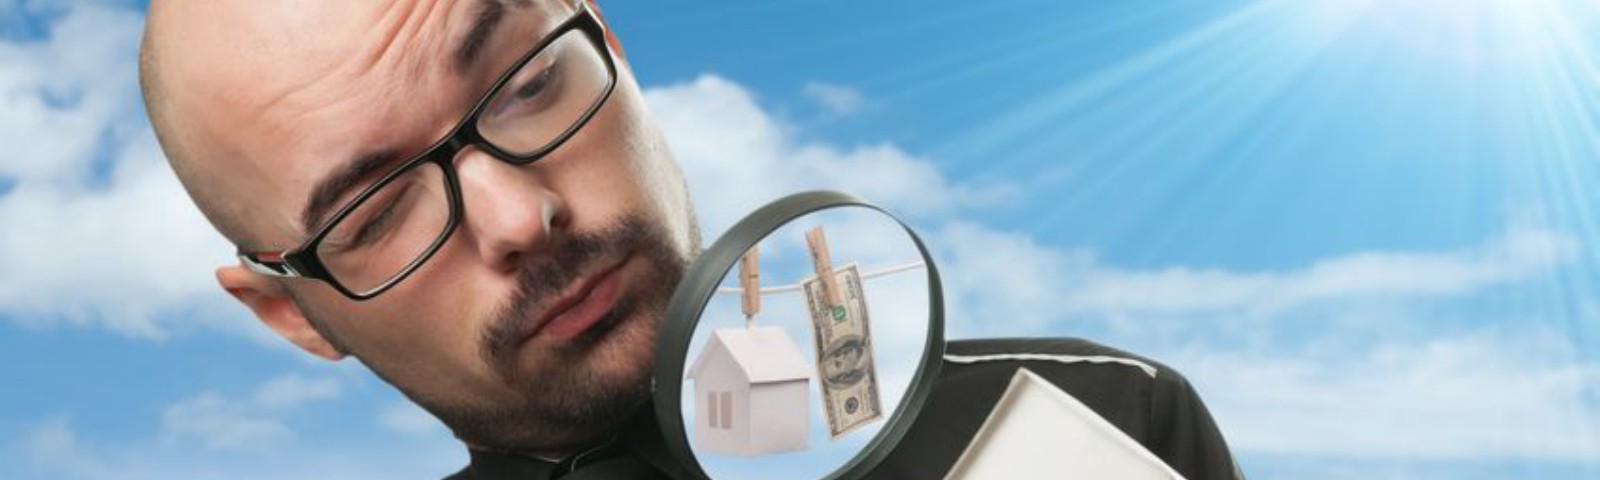 Man with magnifying glass looks closely at toy house.